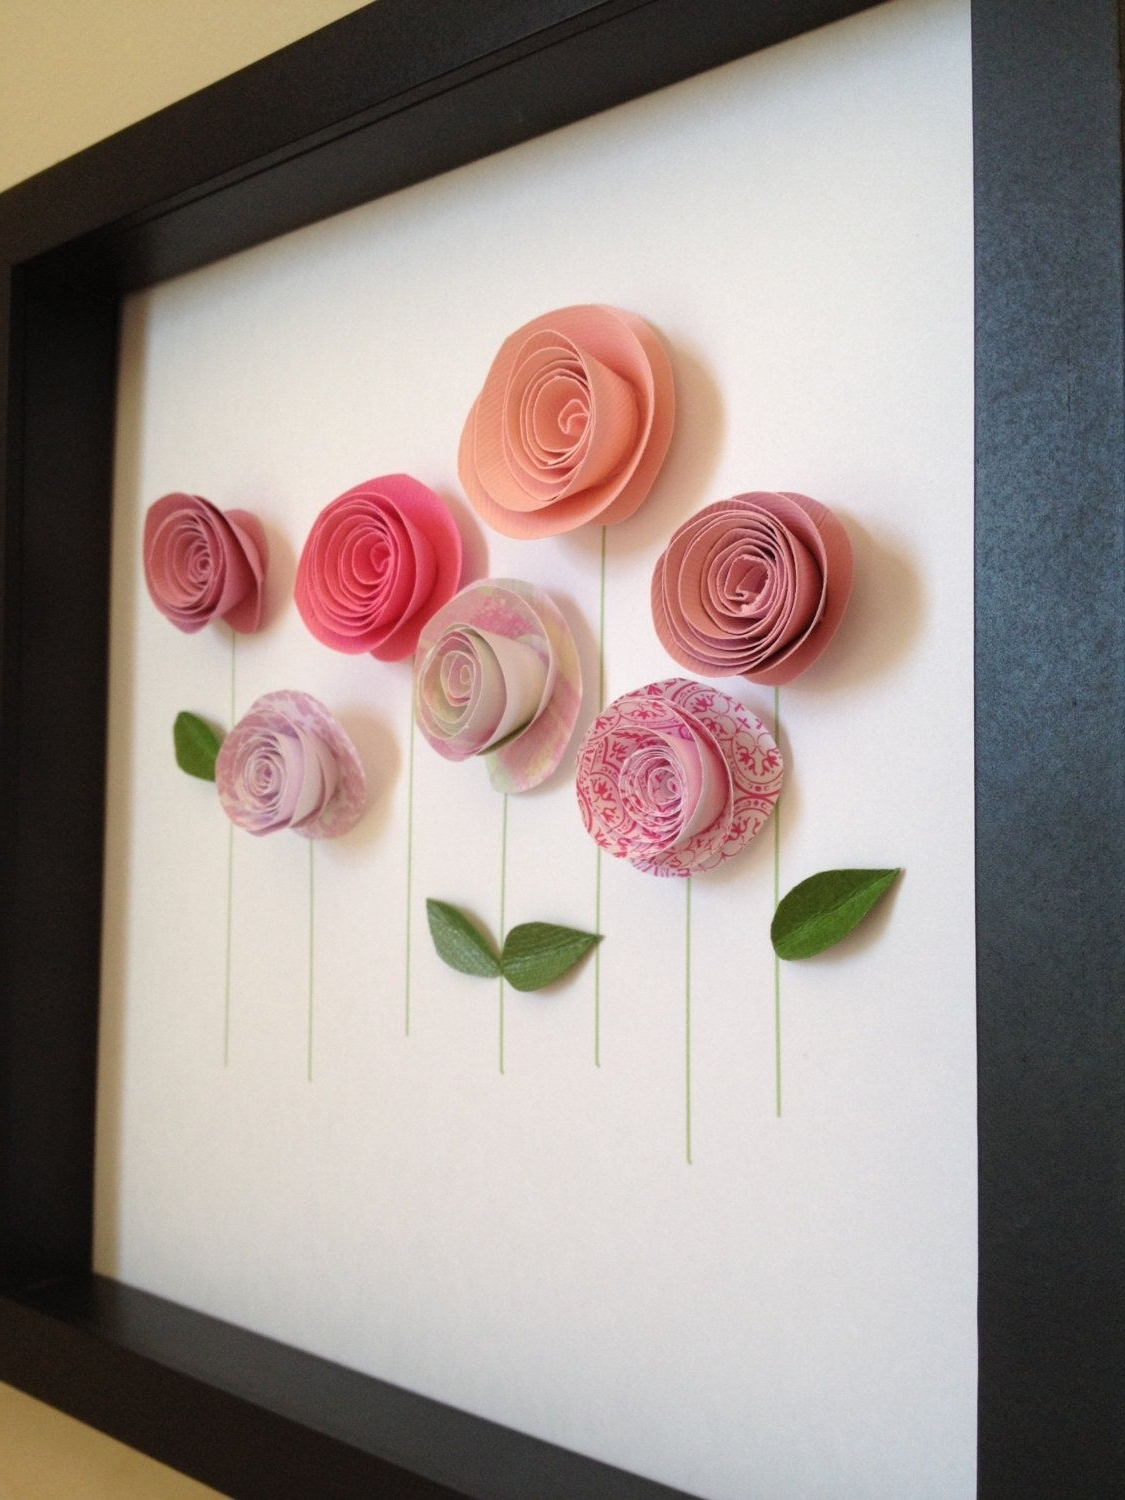 Well Known 3d Garden Wall Art With Pink Rose Garden, 3d Paper Art, Customize With Your Colors And (View 11 of 15)